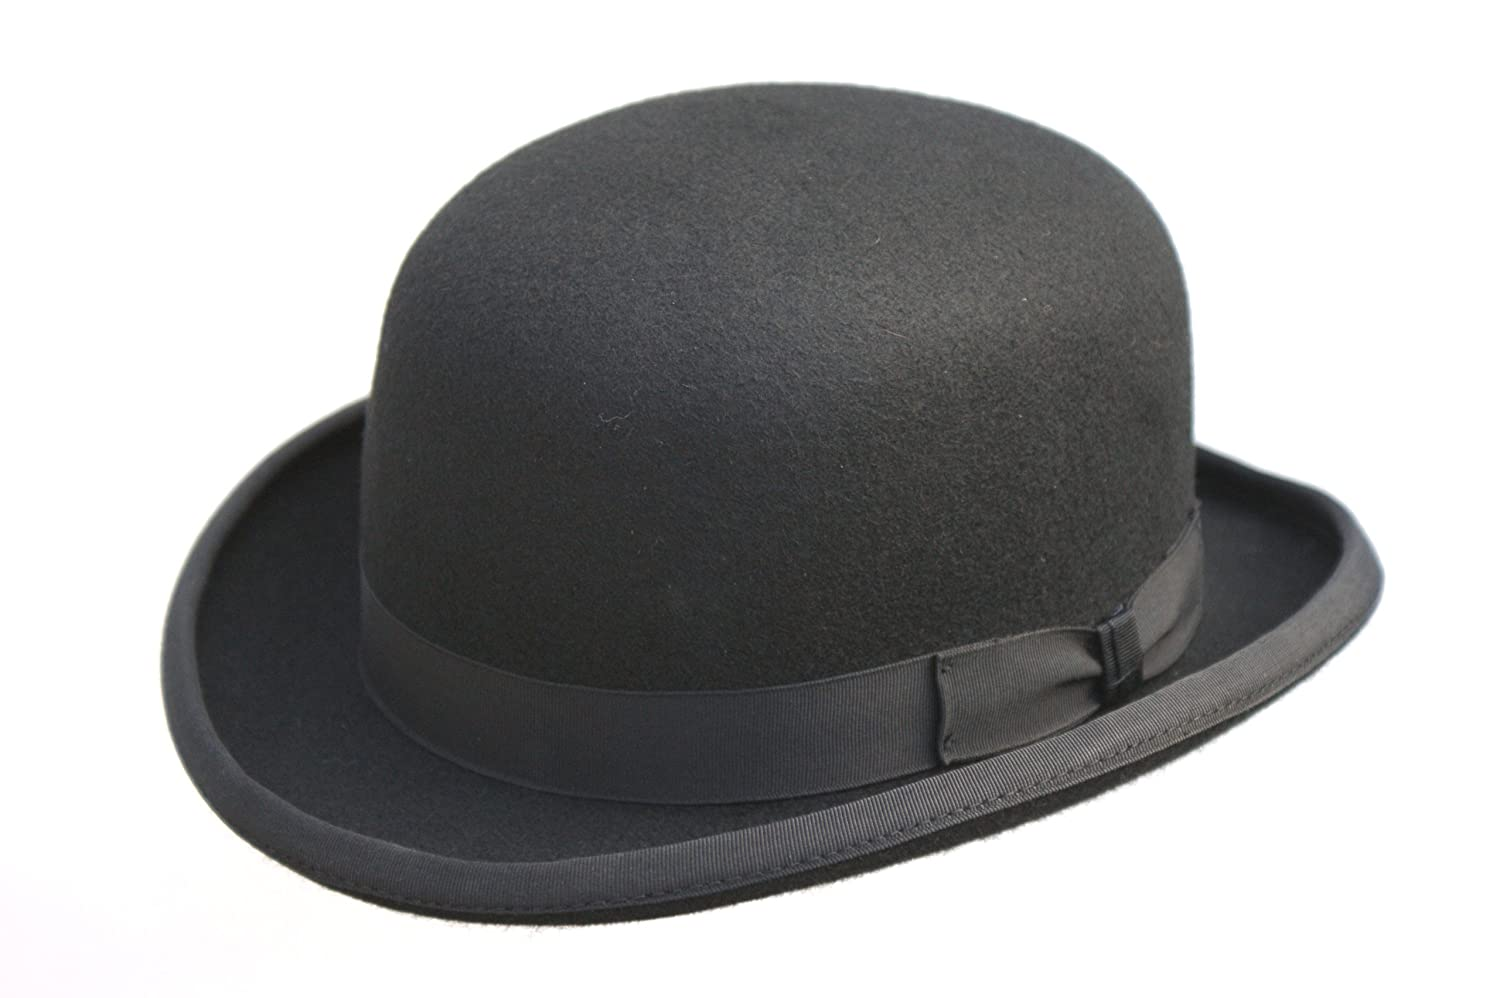 24670e12689 High Quality Hard Top 100% Wool Bowler Hat - Satin Lined - Sizes S to XL   Amazon.co.uk  Clothing